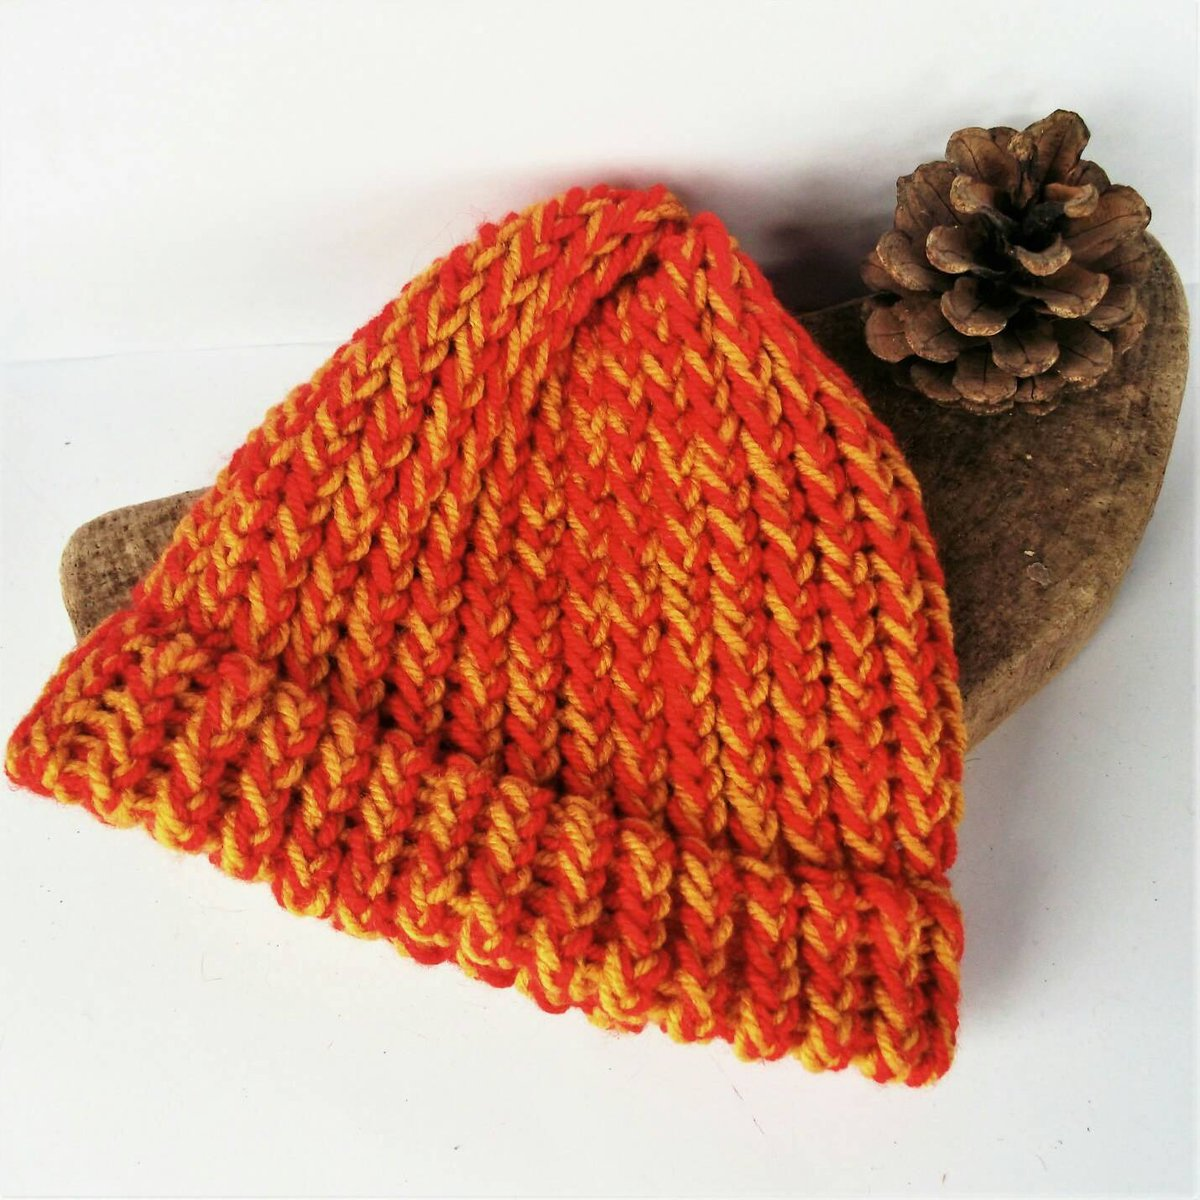 SALE ITEM- Red baby hat, yellow baby hats, red baby beanie, handm…  http:// etsy.me/2xq6gZU  &nbsp;   #Etsychaching #Onlyafiver<br>http://pic.twitter.com/KGxx1Bb6uP